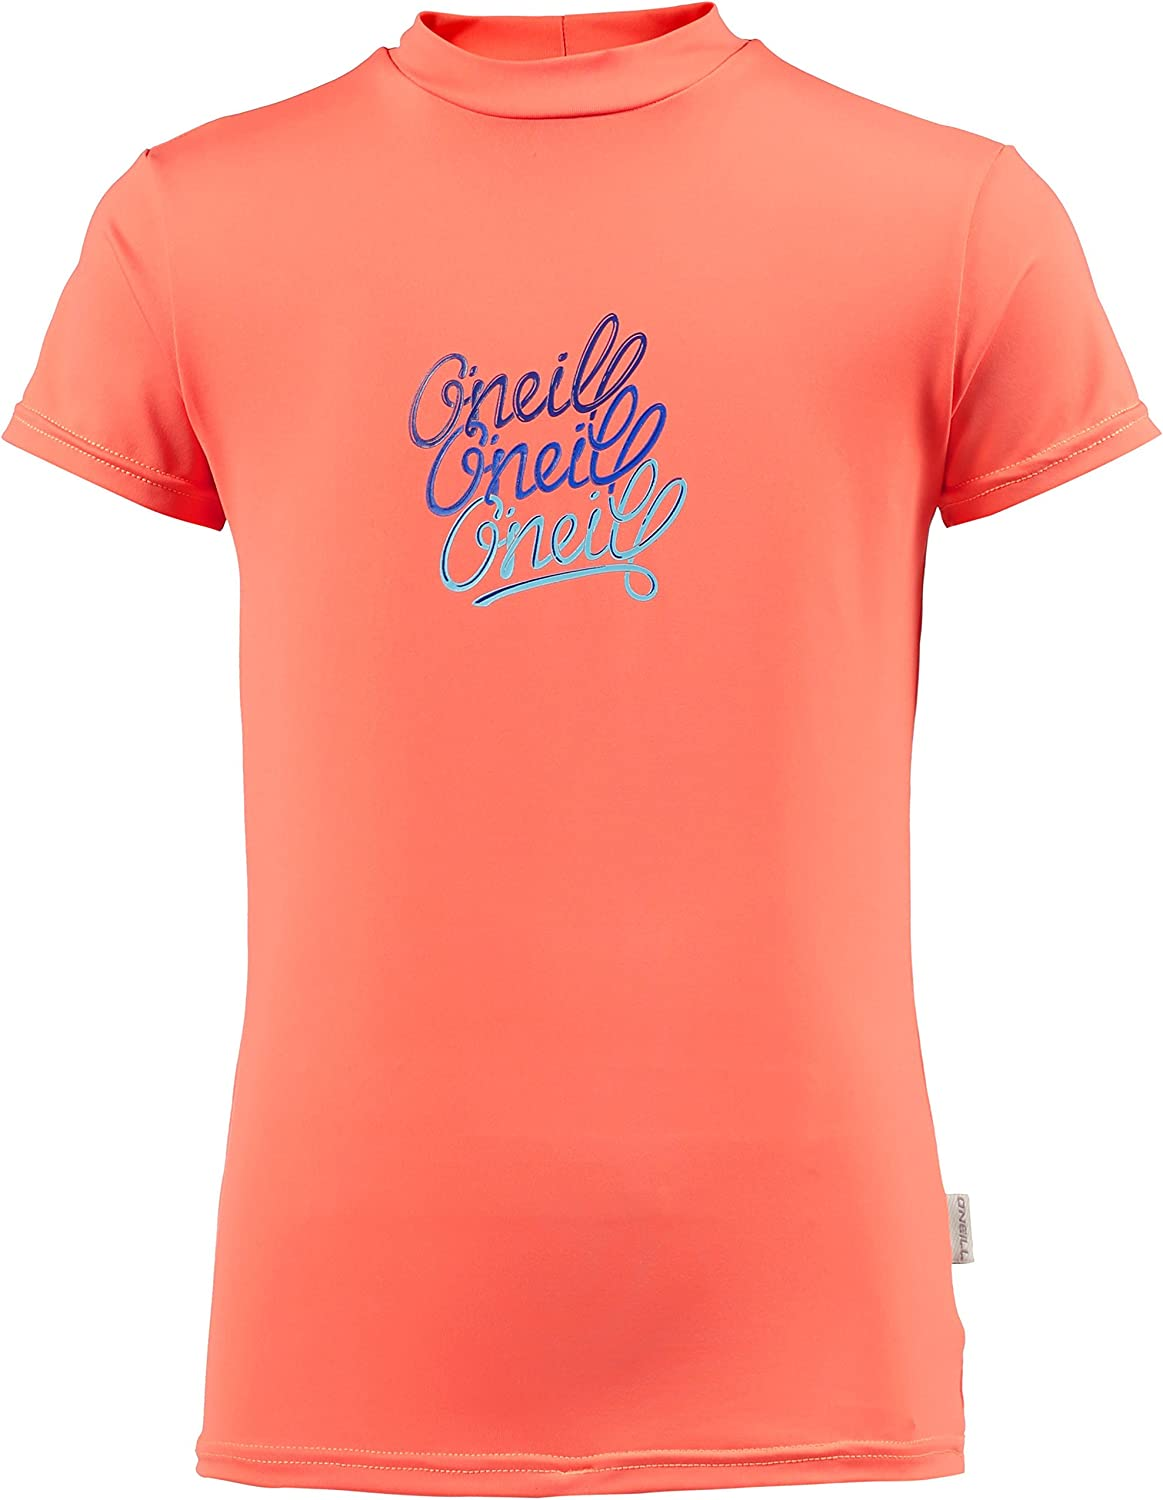 UV Sun Protection and SPF Properties ONeill Youth Kids Junior Girls Short Sleeve Rash T-Shirt Tee T Shirt Top Coral Punch